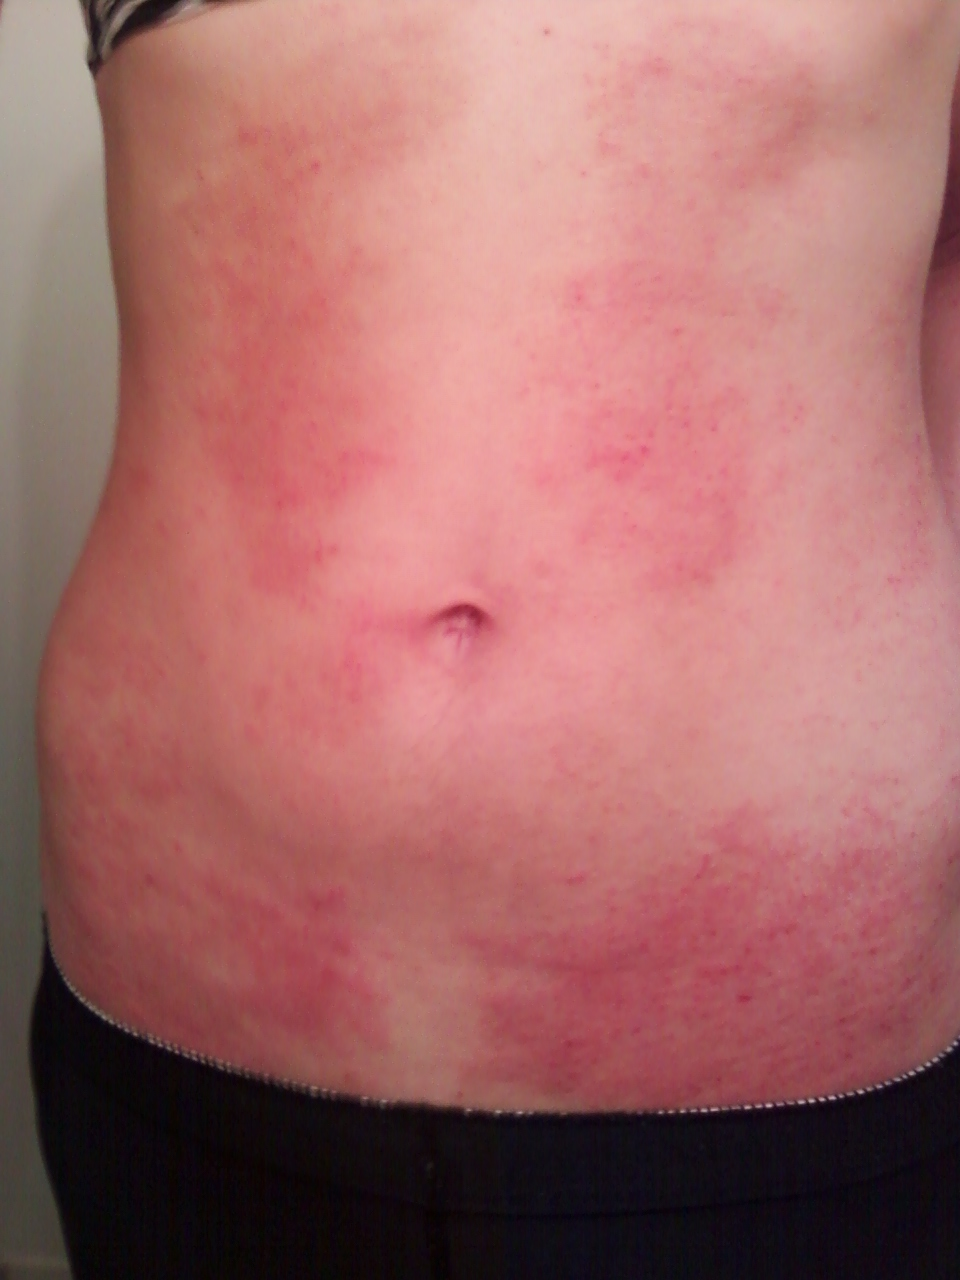 Itchy Rash On Torso And Arms - Doctor answers on HealthTap